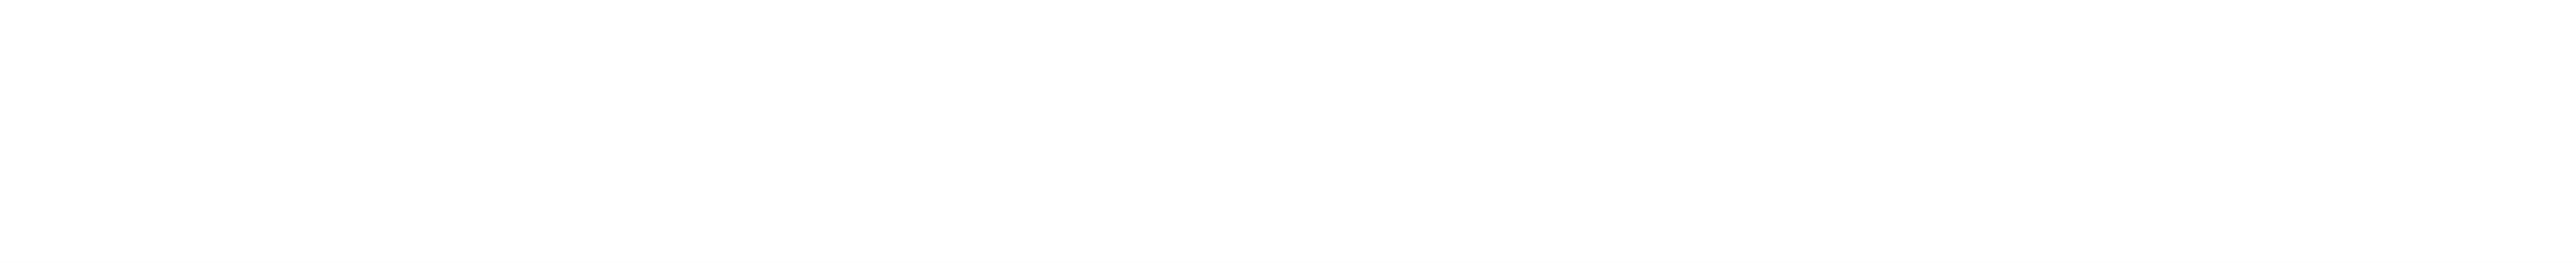 Cloud Background Layer 4